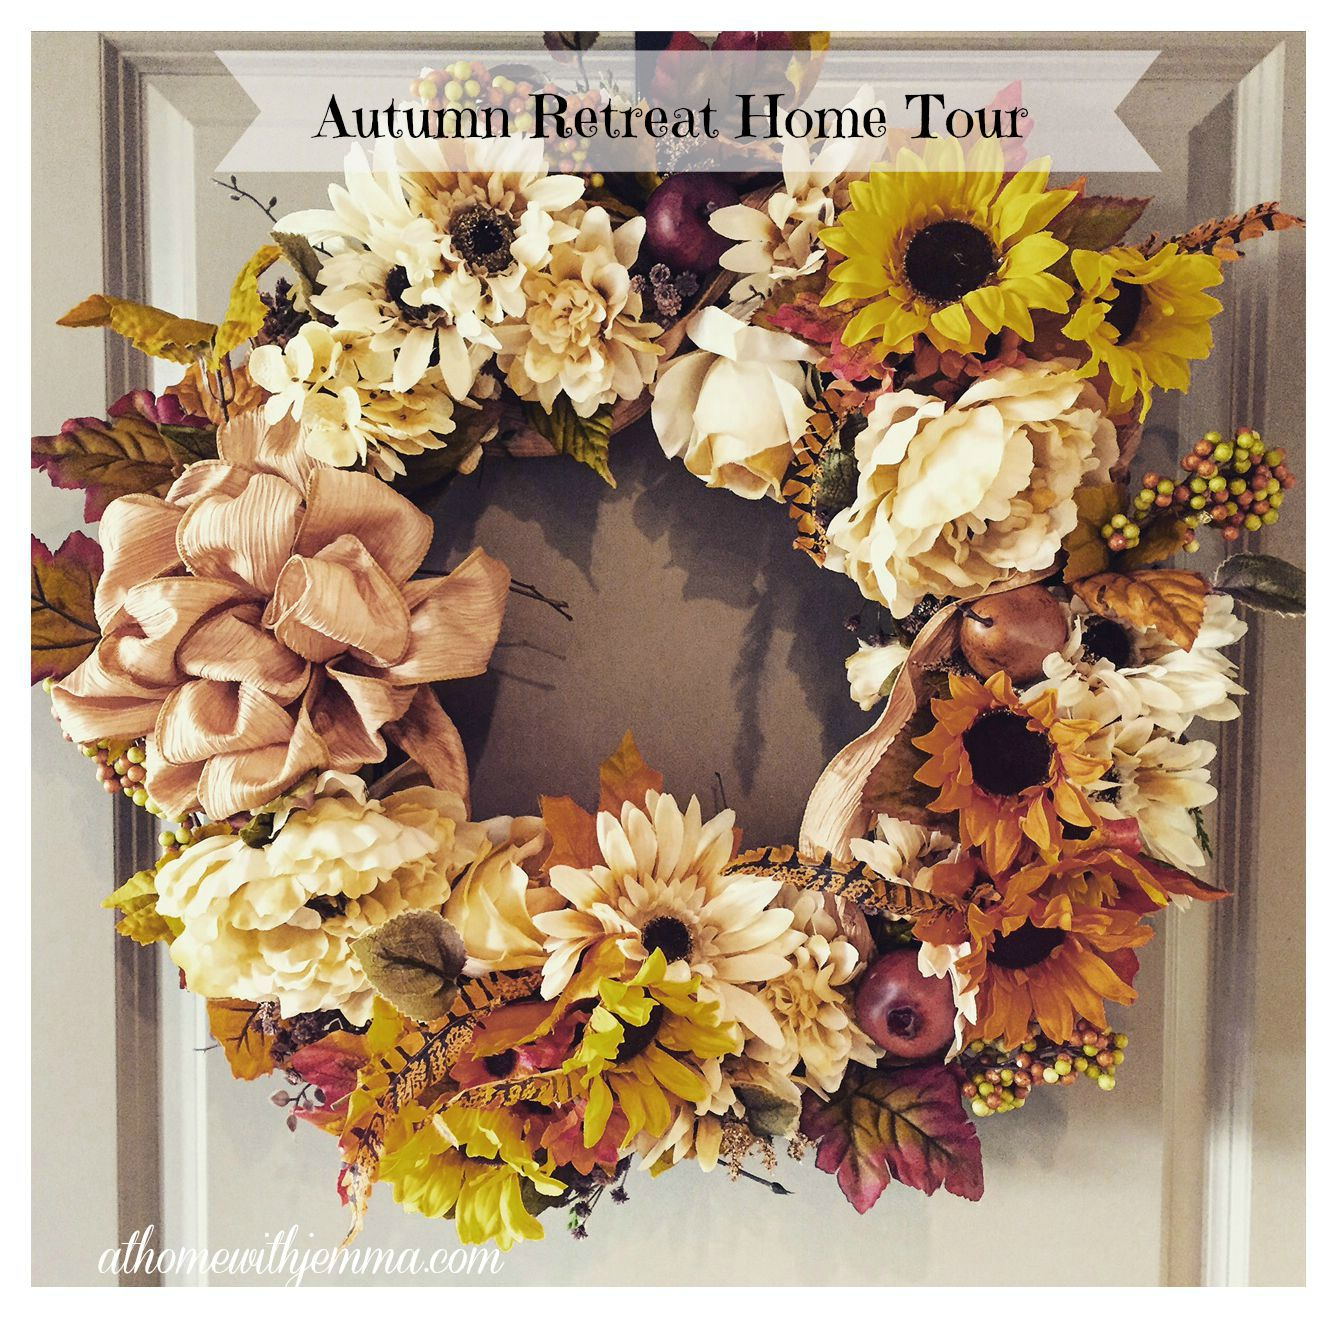 Autumn-Fall-Home-Tour-Decorating-Homemaking-athomewithjemma